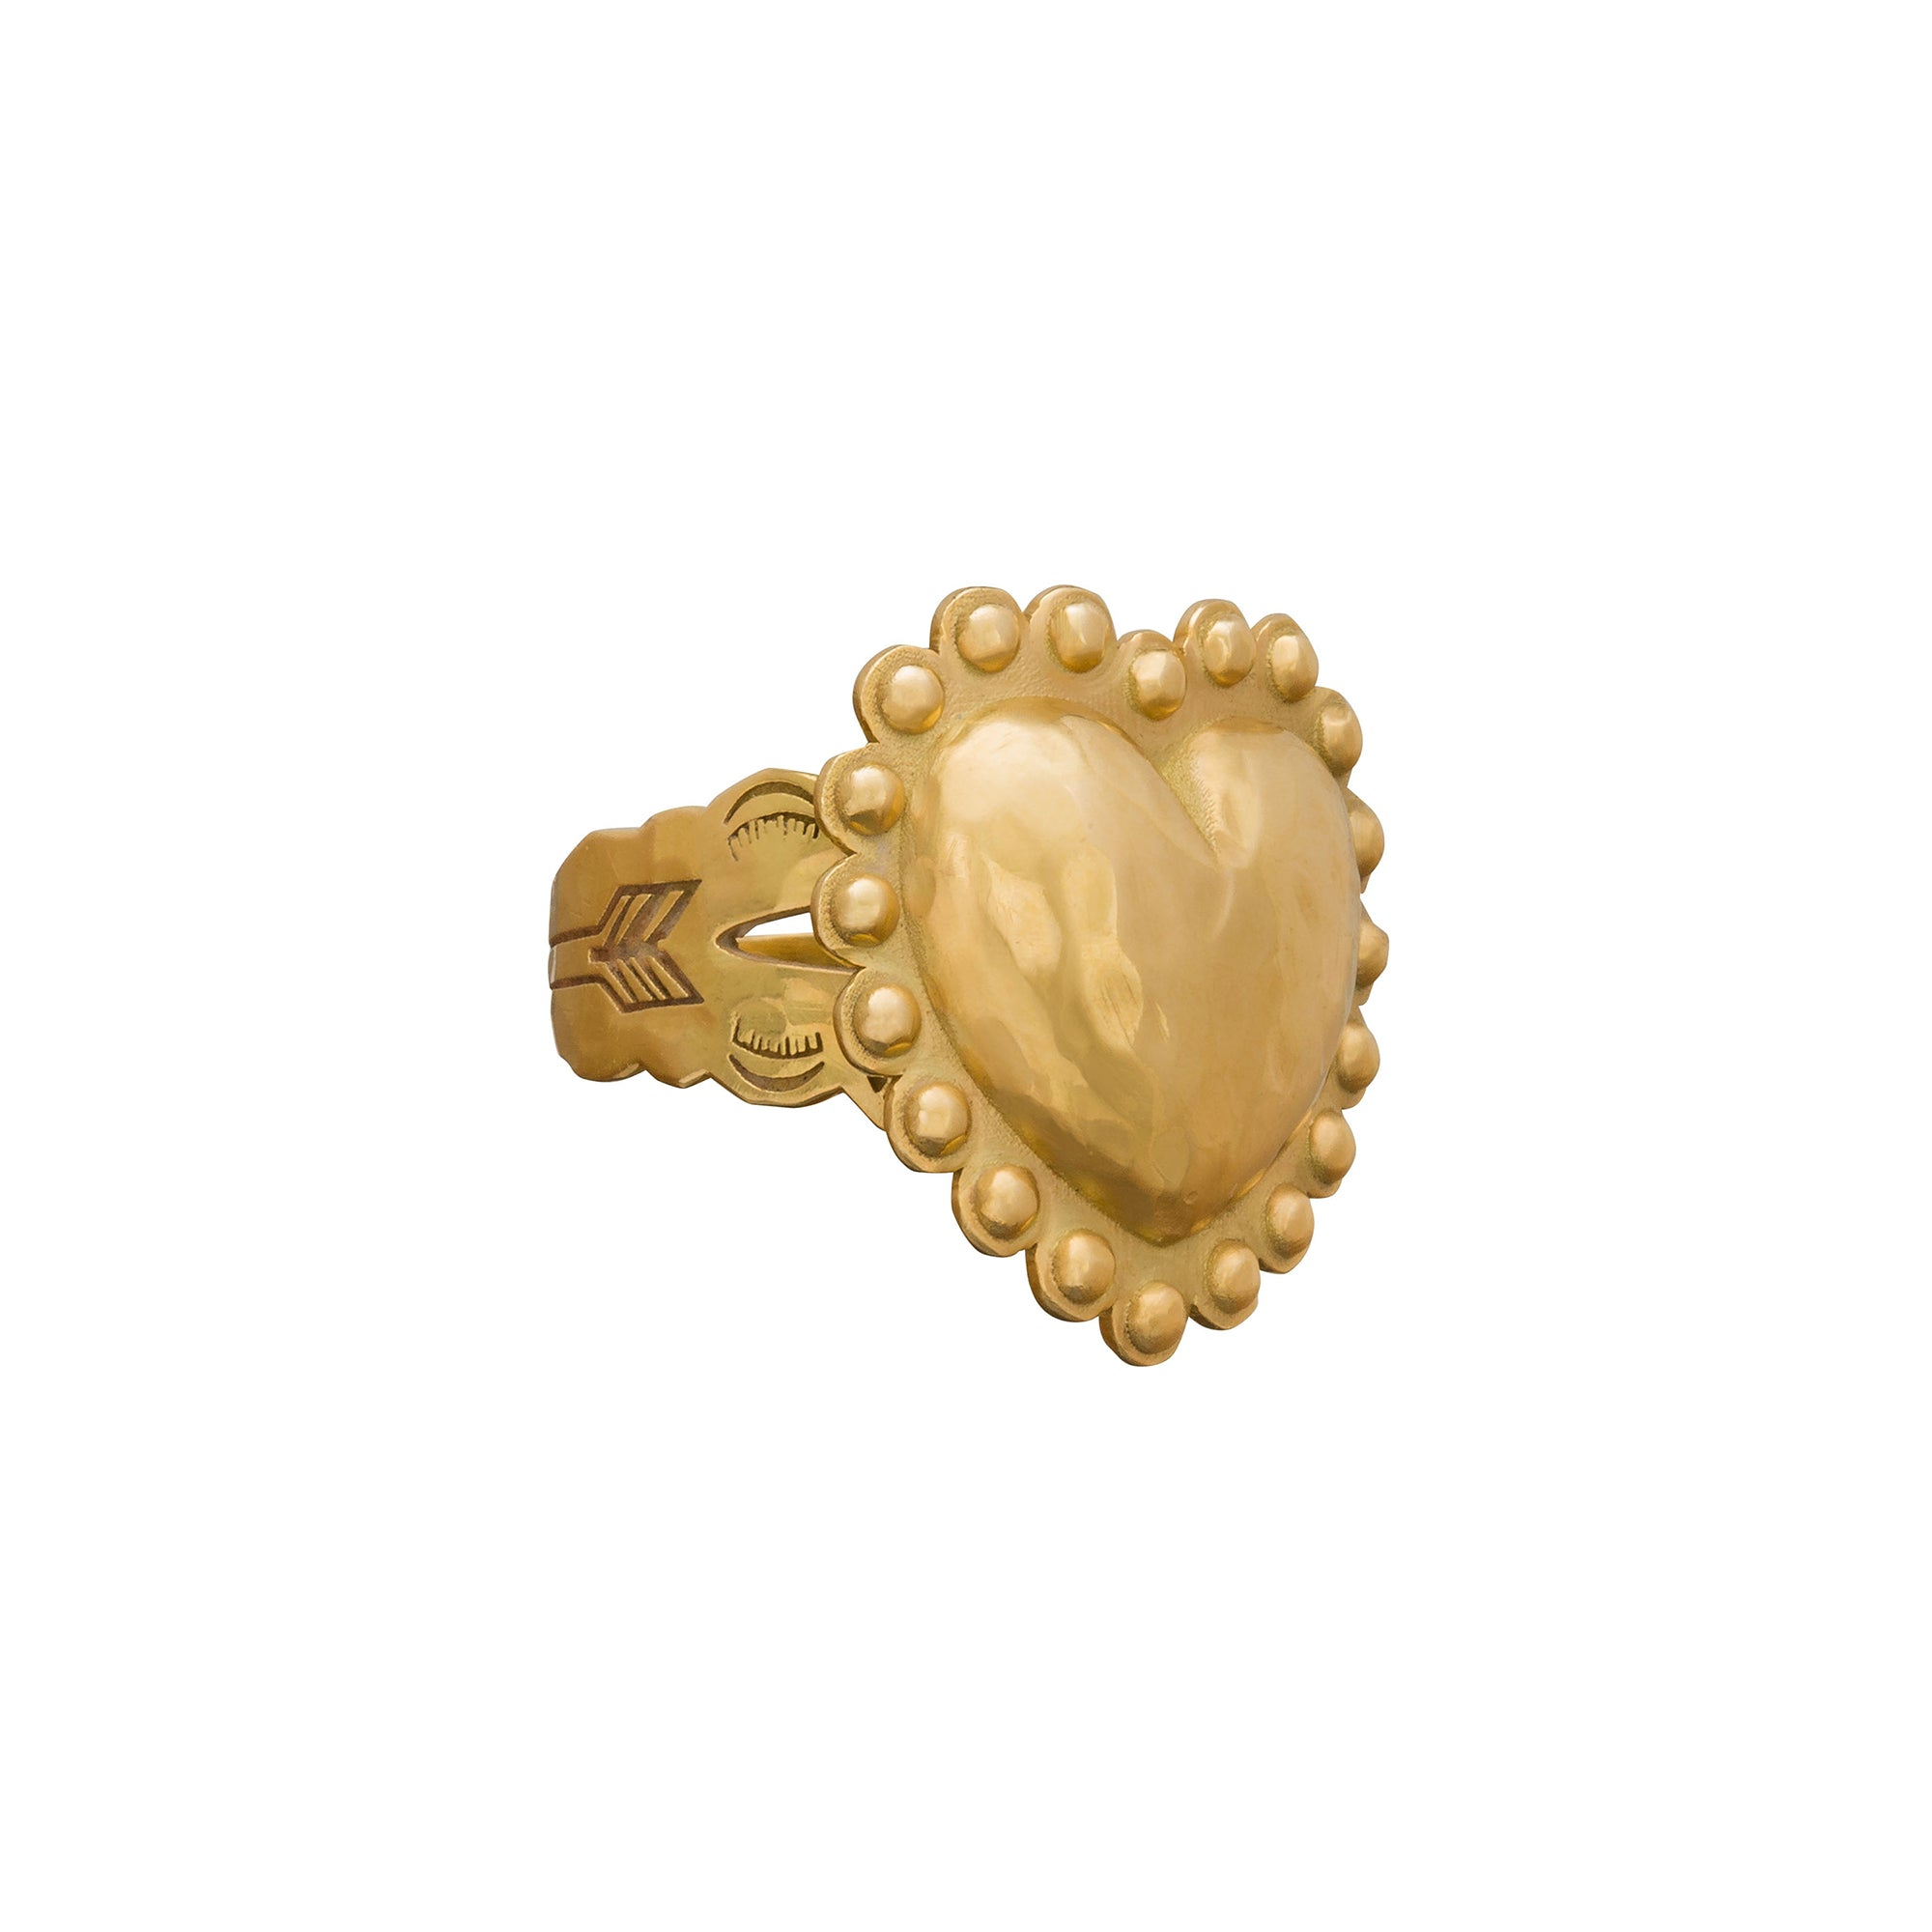 Native American Heart Ring - Christina Alexiou - Rings | Broken English Jewelry